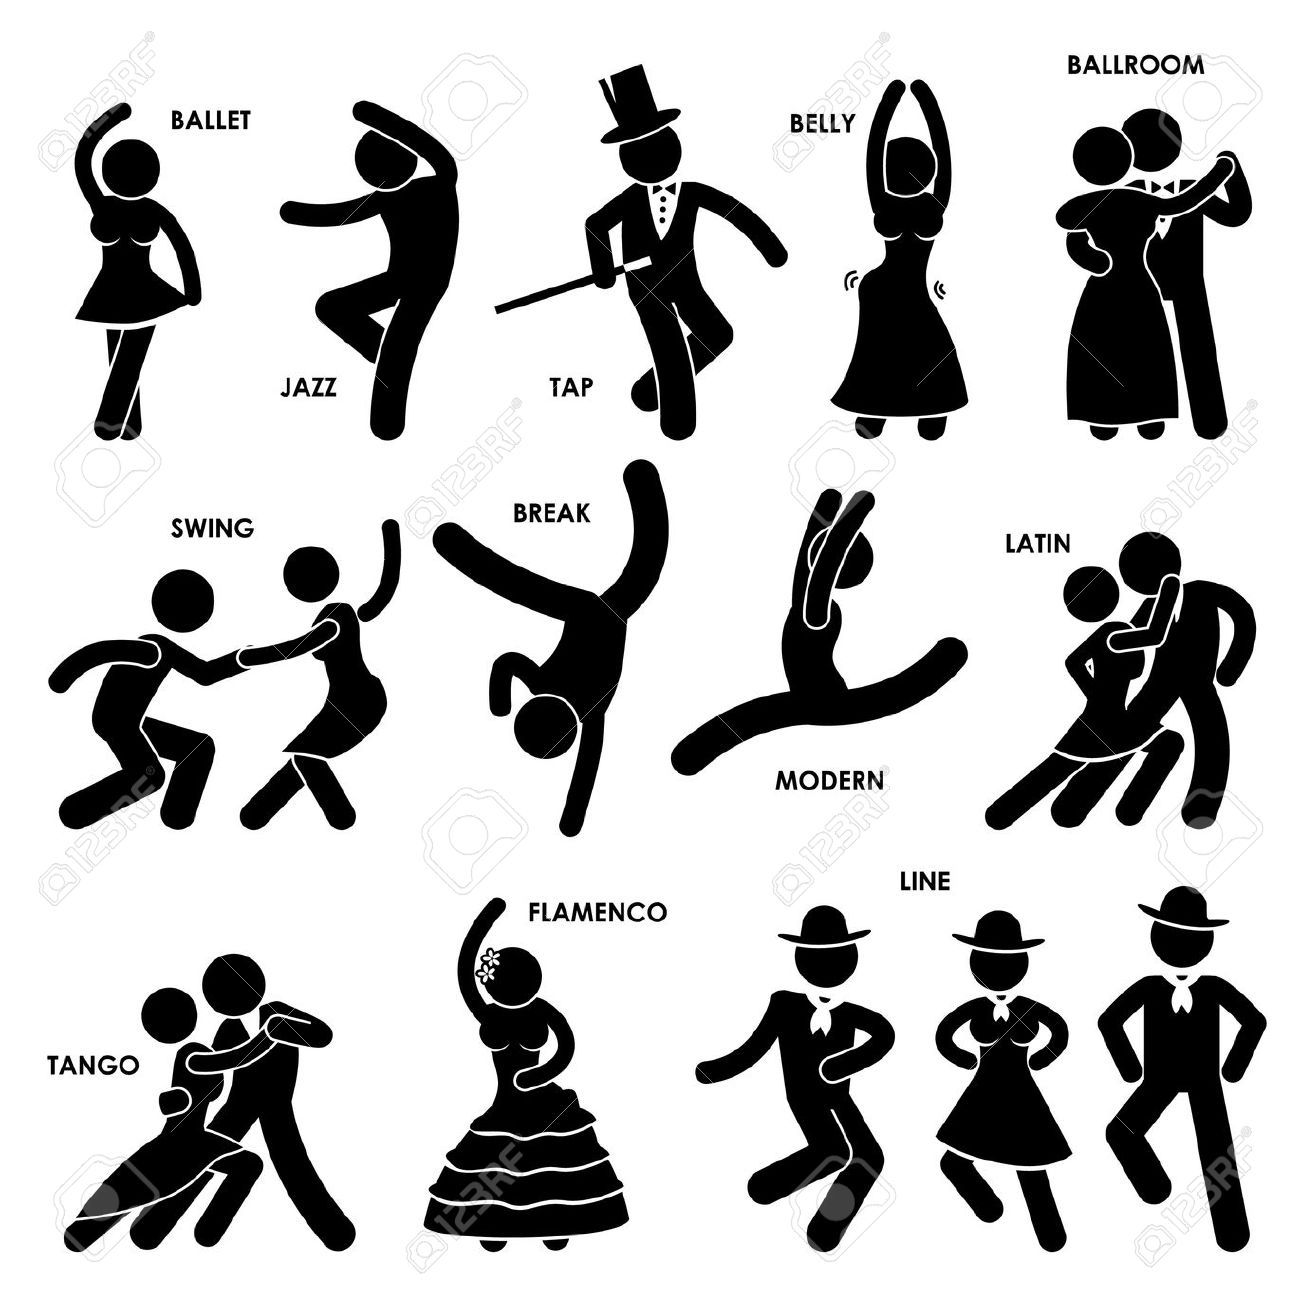 medium resolution of dance stock vector illustration and royalty free dance clipart